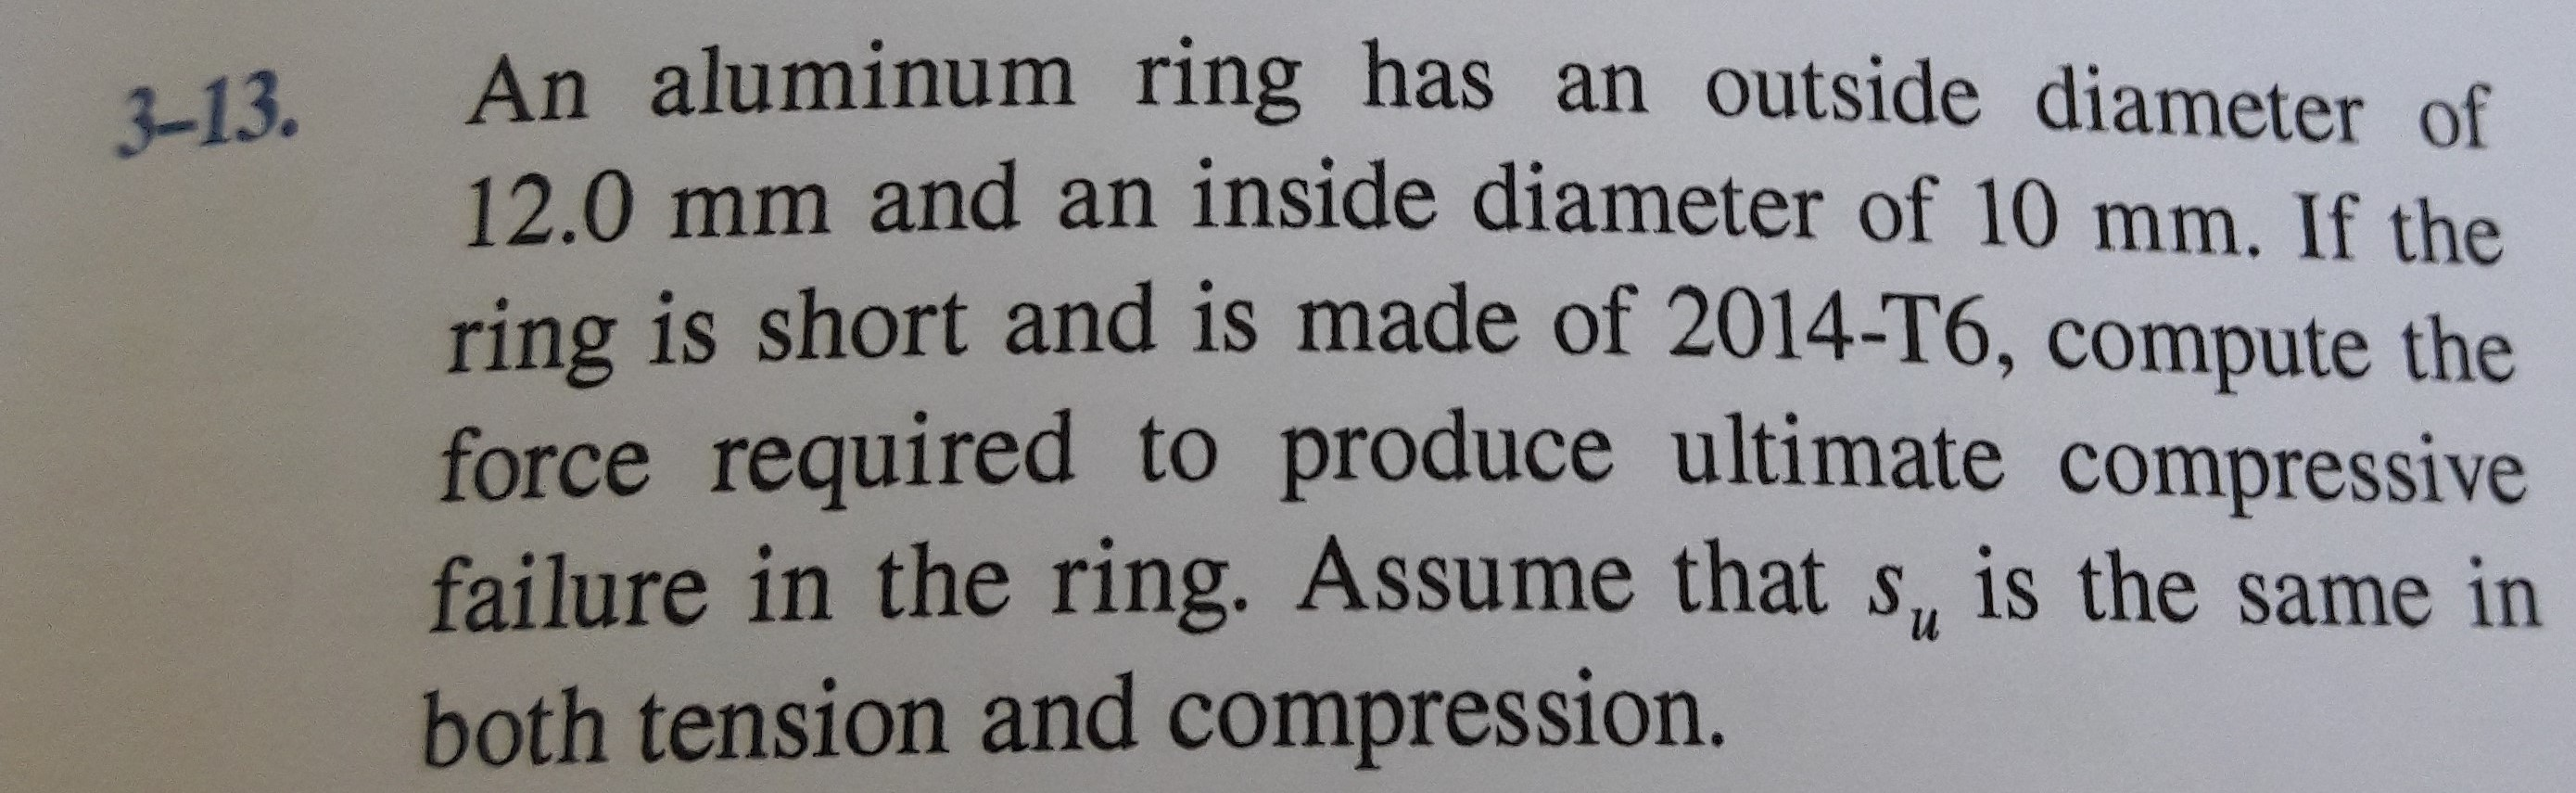 An aluminum ring has an outside diameter of 12.0 mm and an inside diameter of 10 mm. If the ring is short and is made of 2014-T6, compute the 3-13. force required to produce ultimate compressive failure in the ring. Assume that s, is the same in both tension and compression.